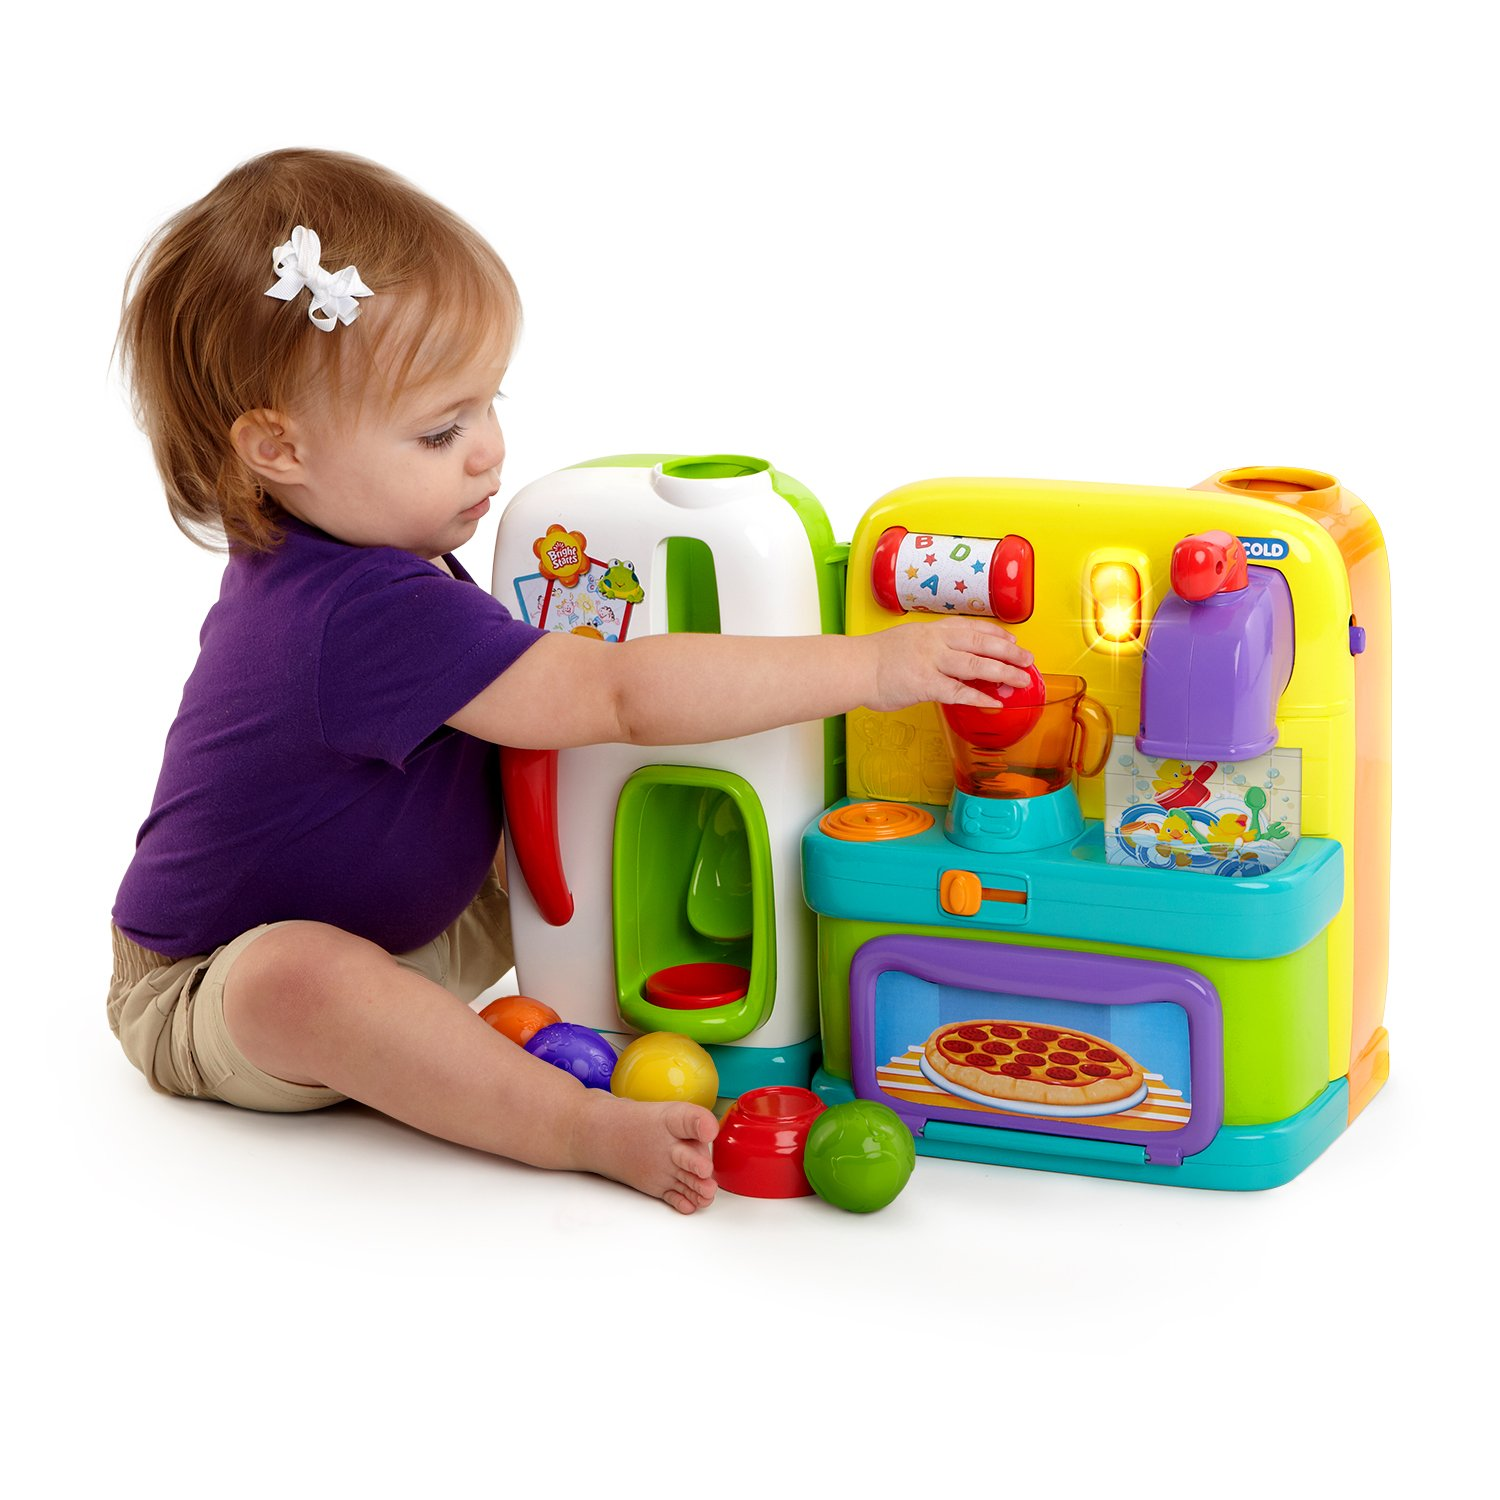 Toys For 1 Year Old : Best christmas toys for year old girls